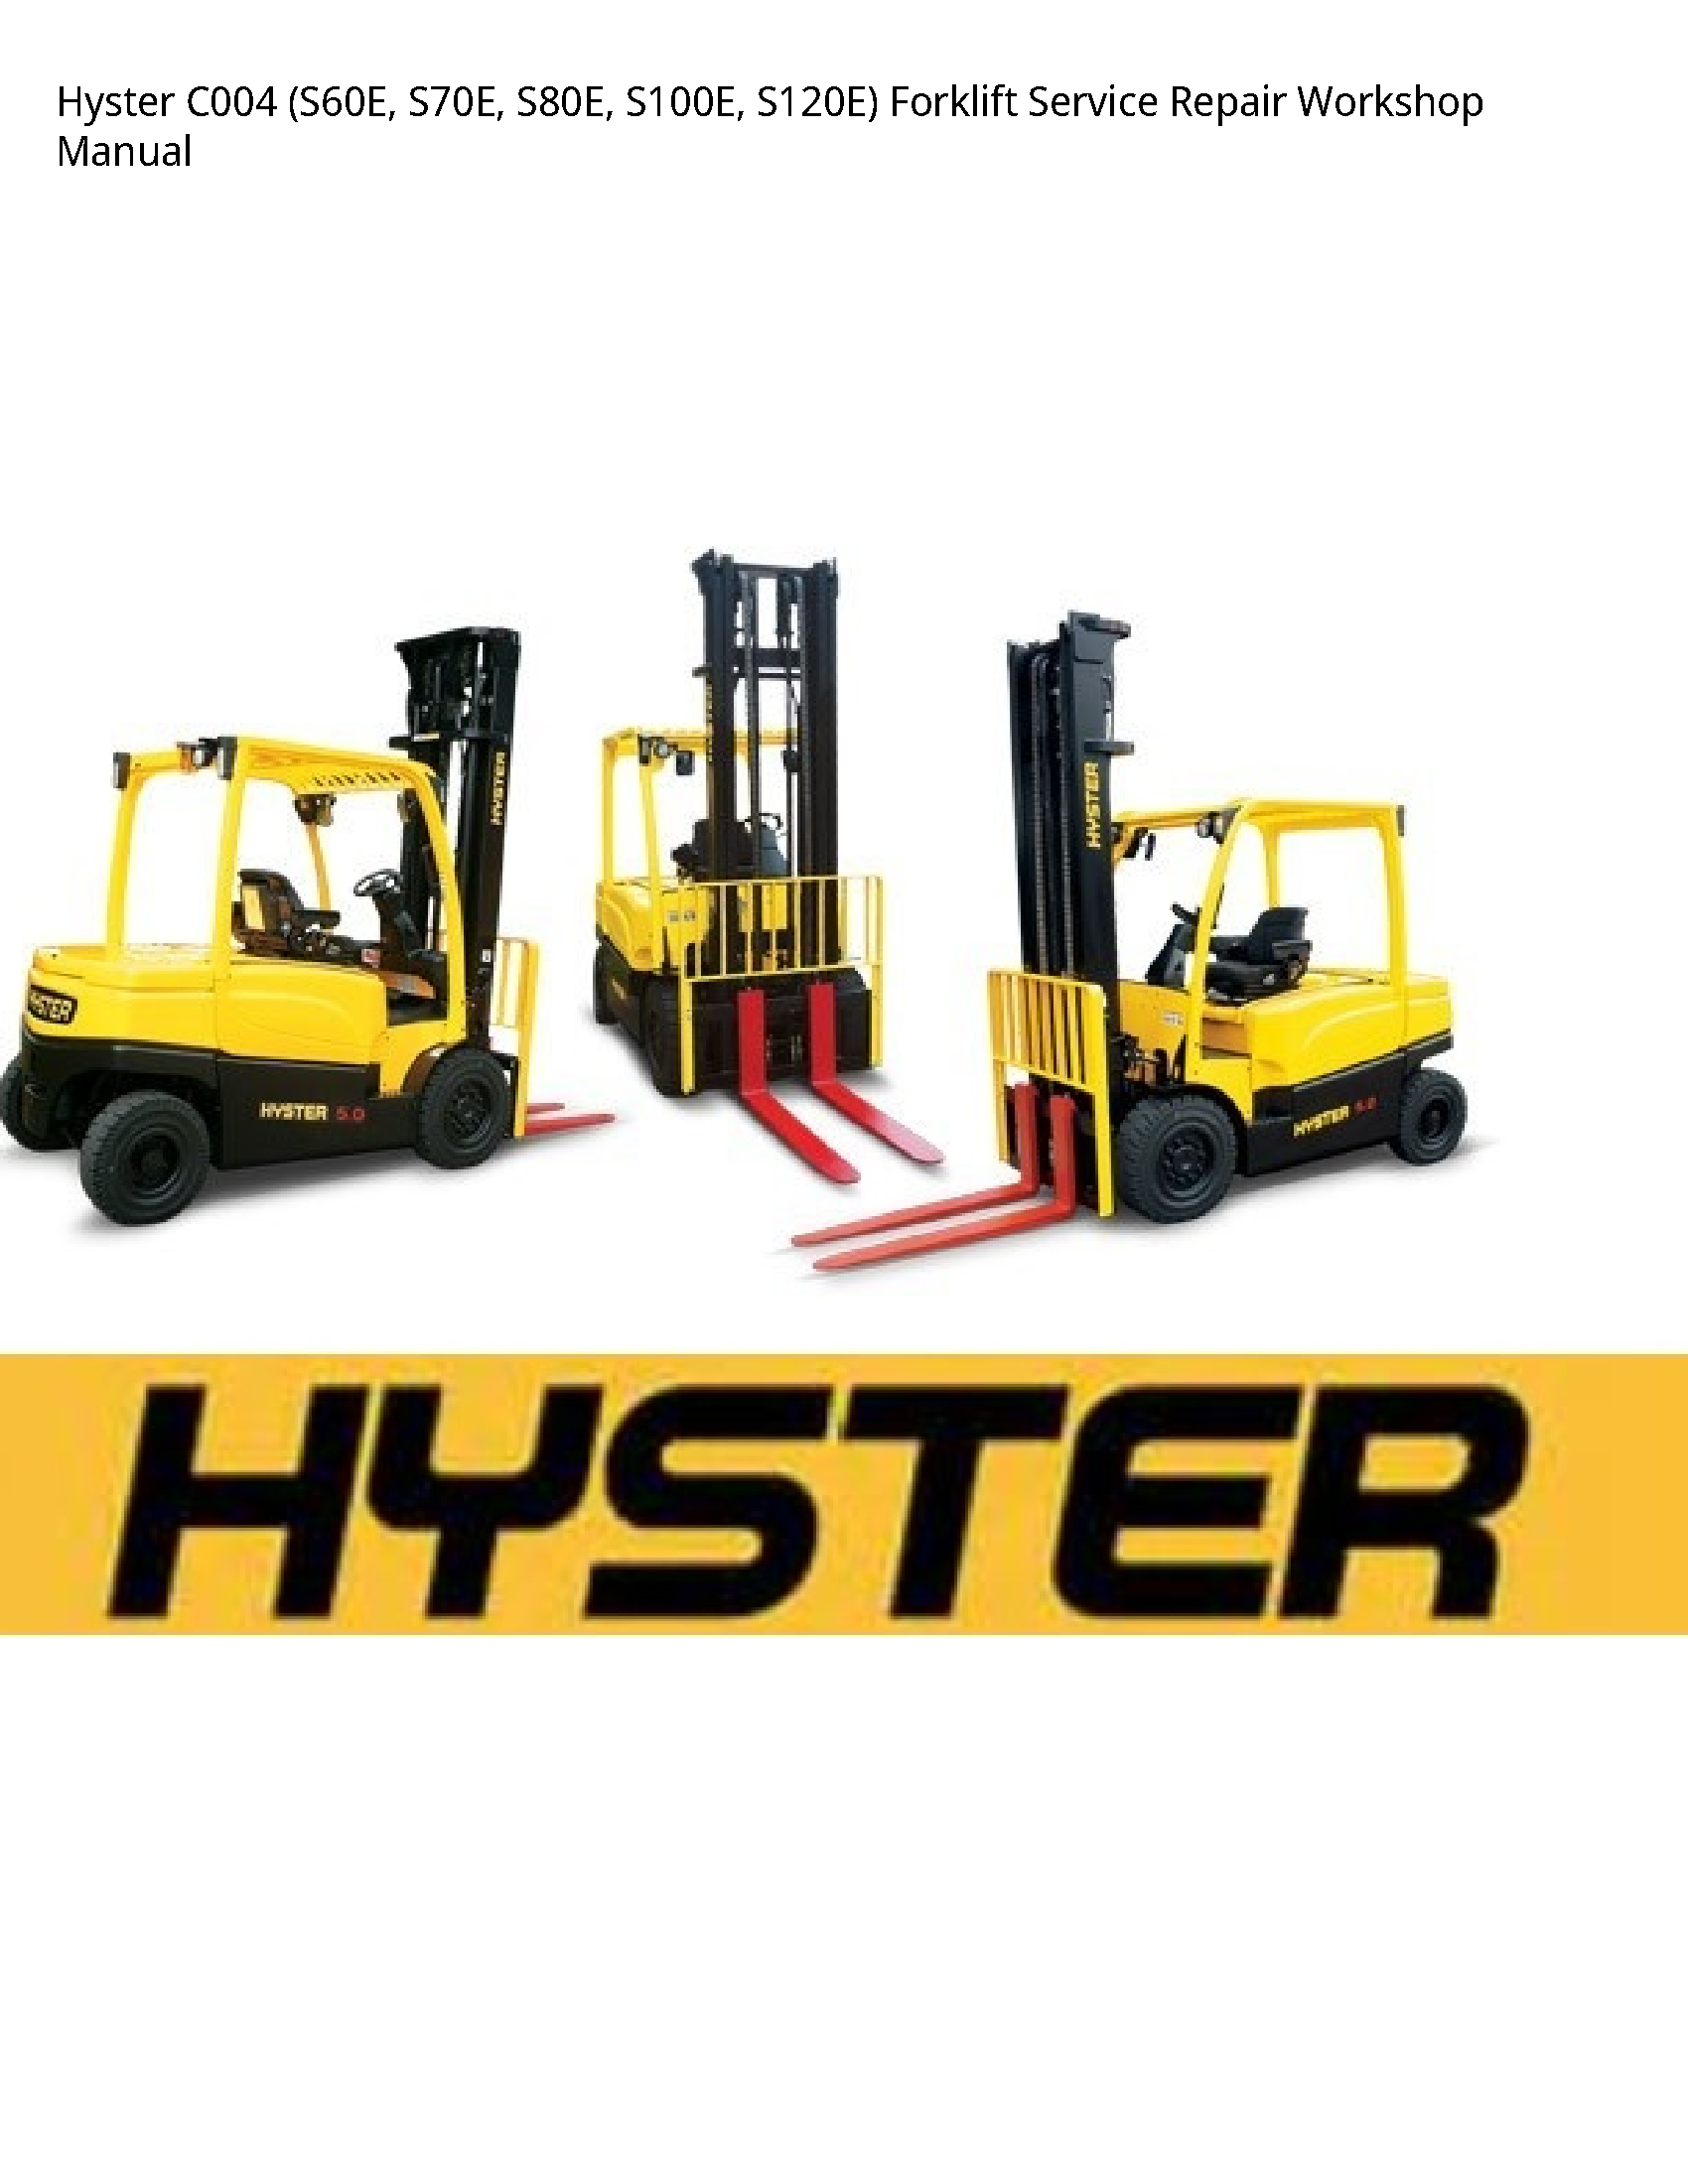 Hyster C004 Forklift manual